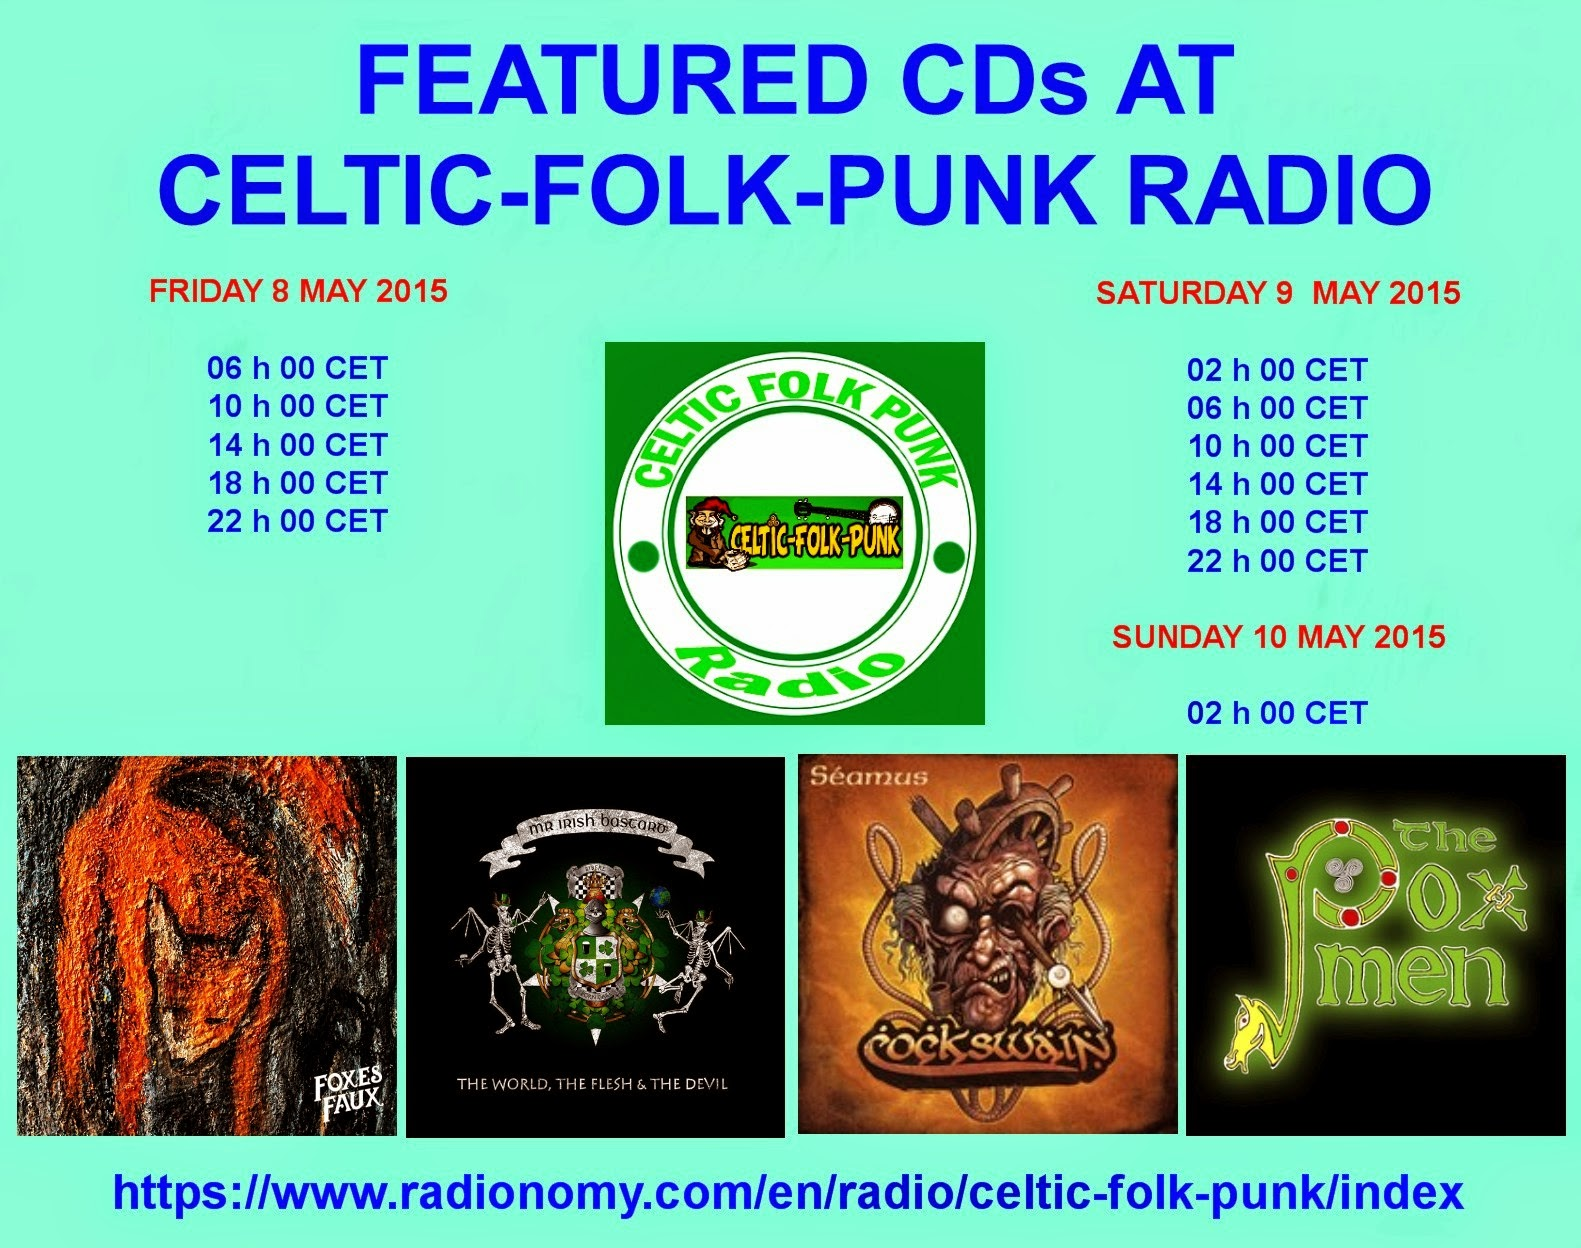 FEATURED ALBUMS AT CELTIC-FOLK-PUNK RADIO (8-10 MAY 2015 ...